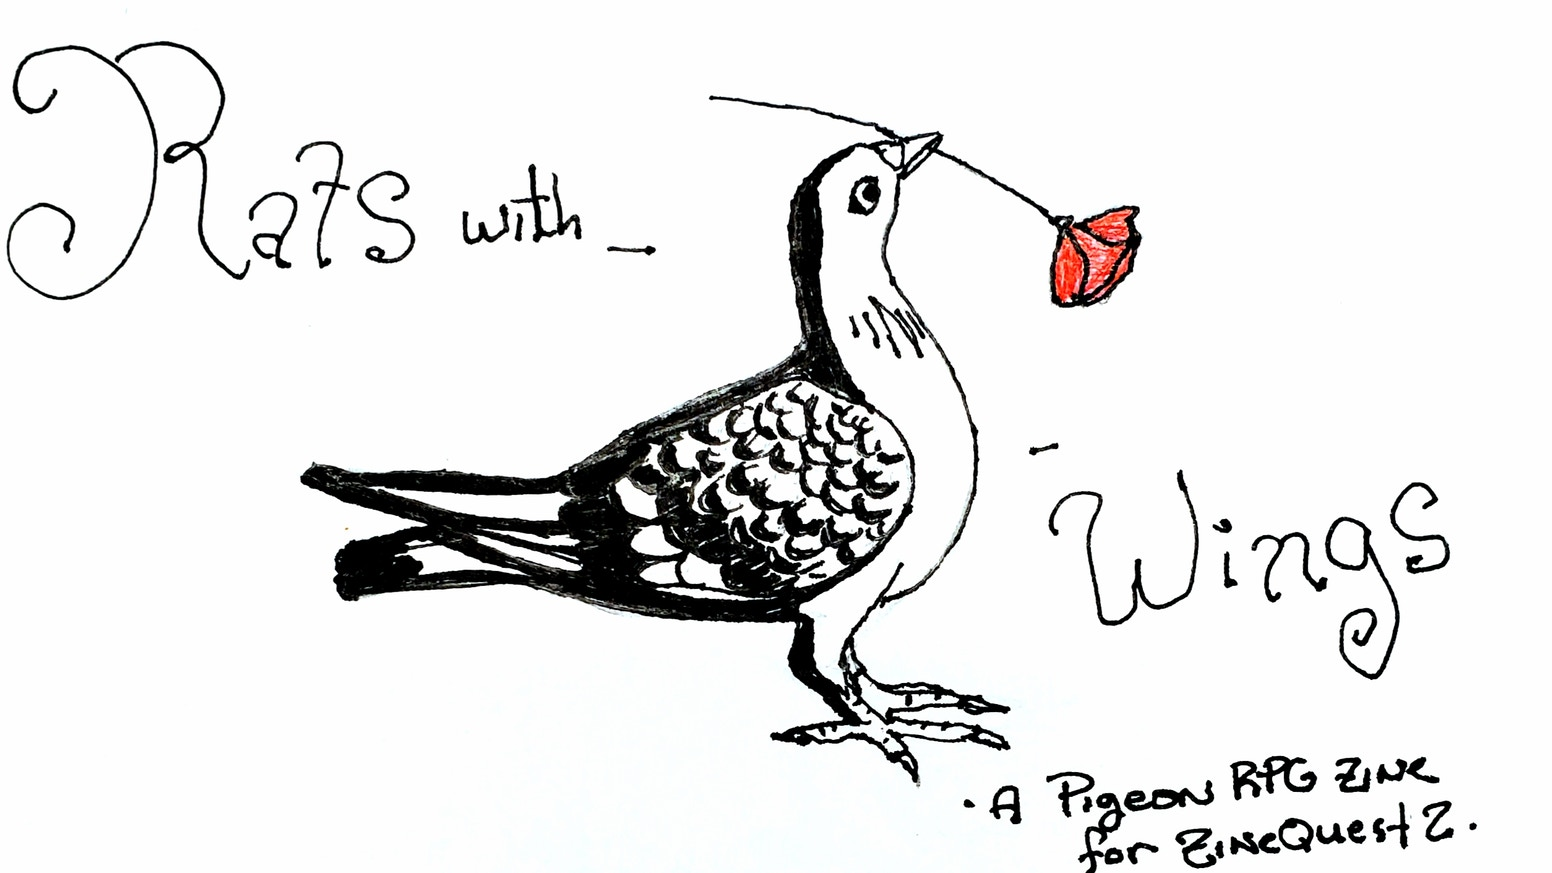 An RPG zine dedicated to pigeons. Yes, that kind of pigeon.